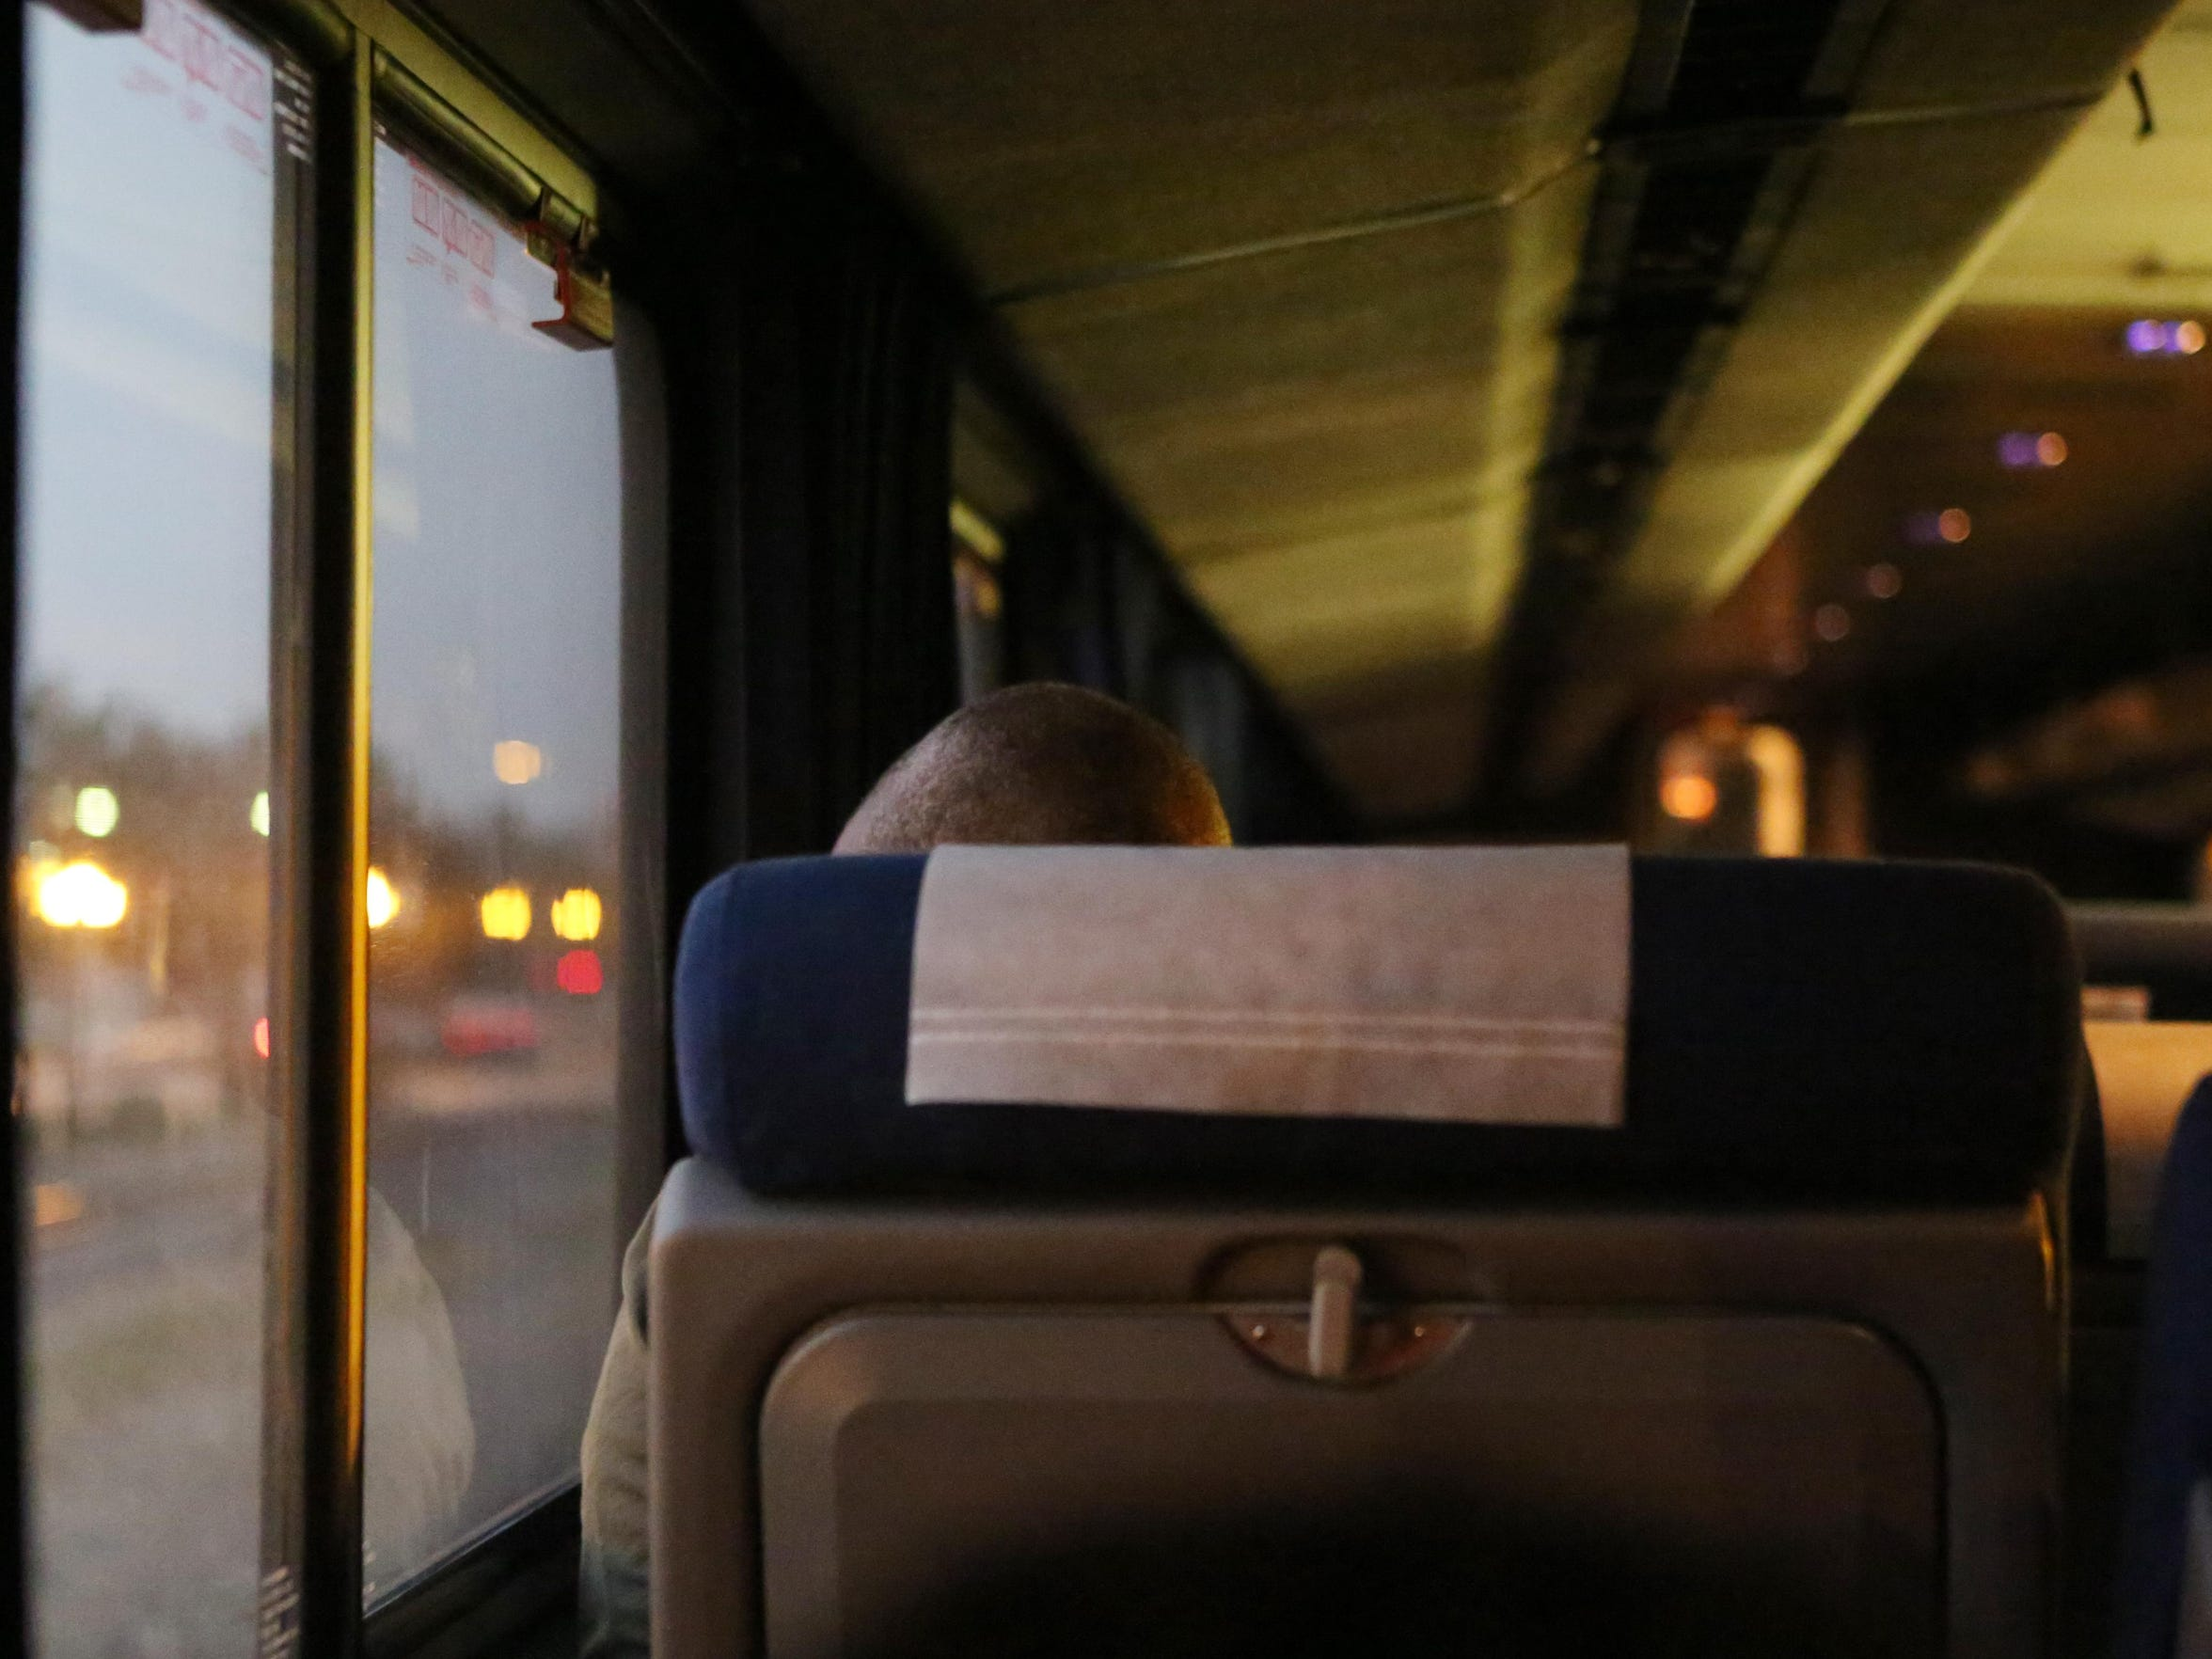 A passenger looks out the window of the westbound train